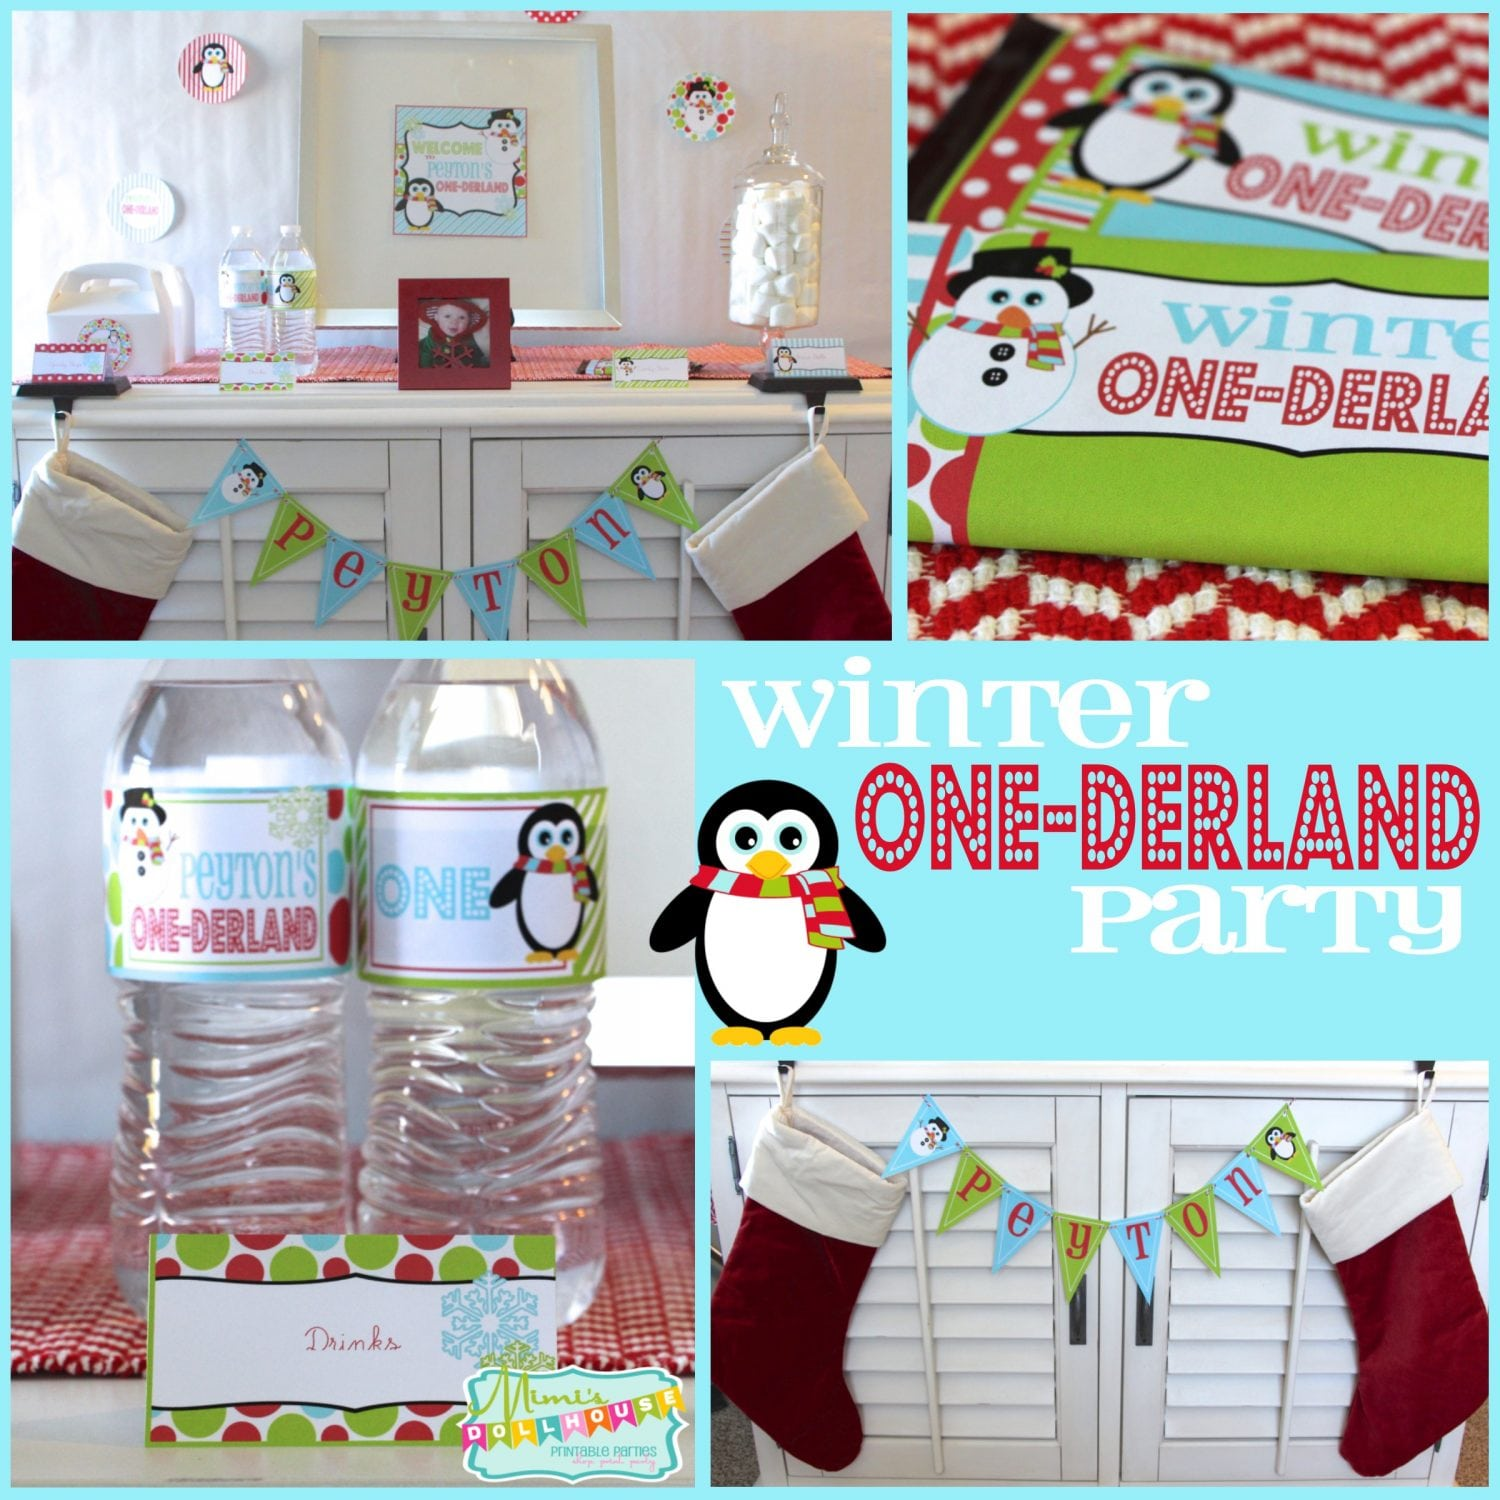 Winter One-derland Party: Penguins and Snowmen, Oh My!